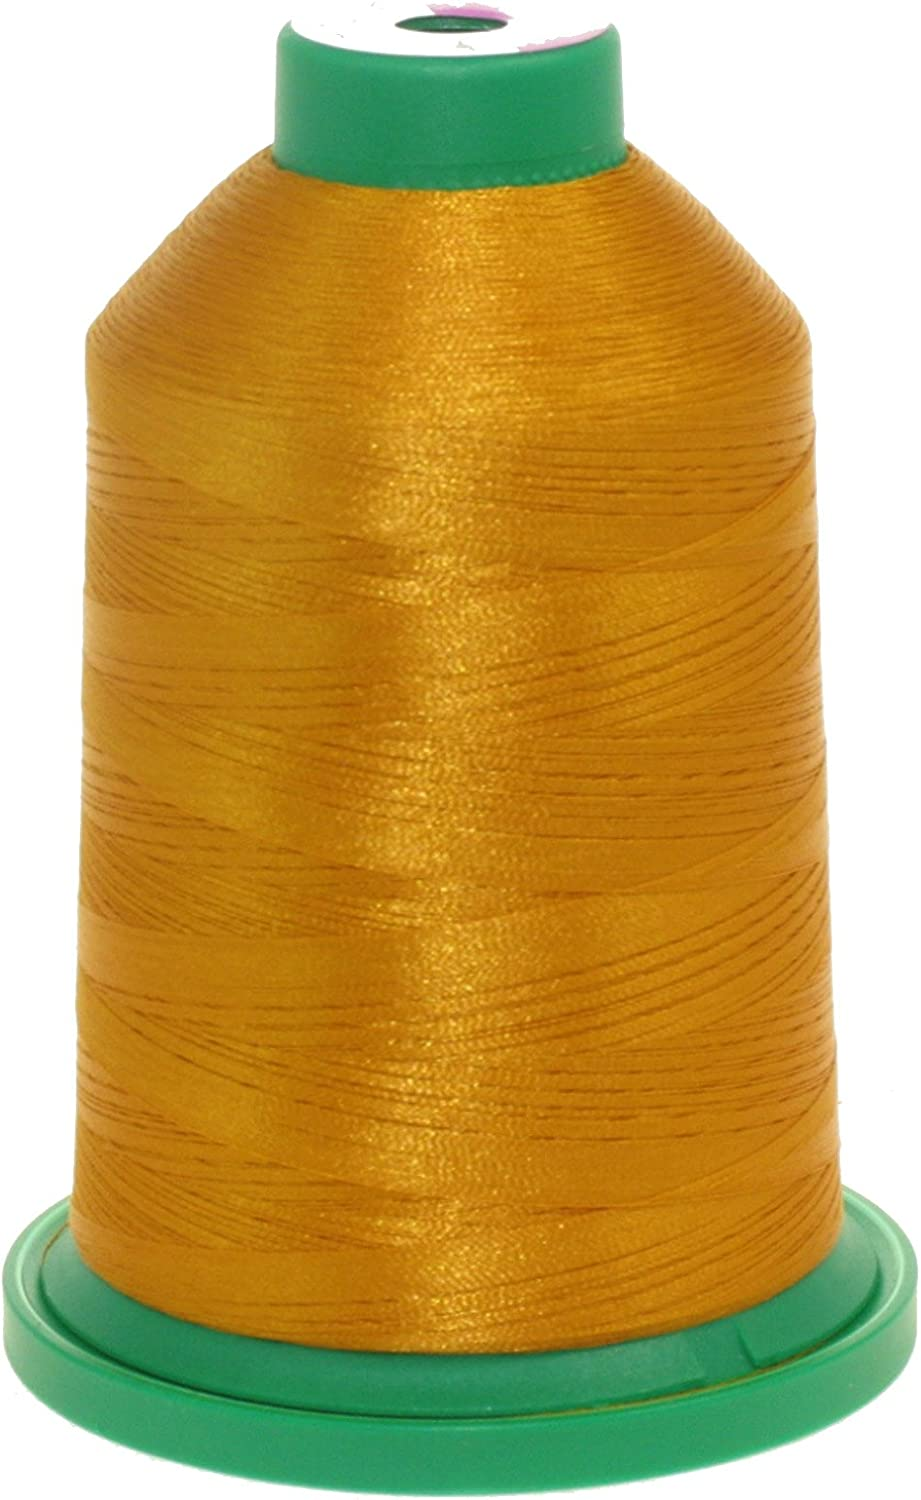 Isacord Embroidery Thread 5000m 0821 0800-0874